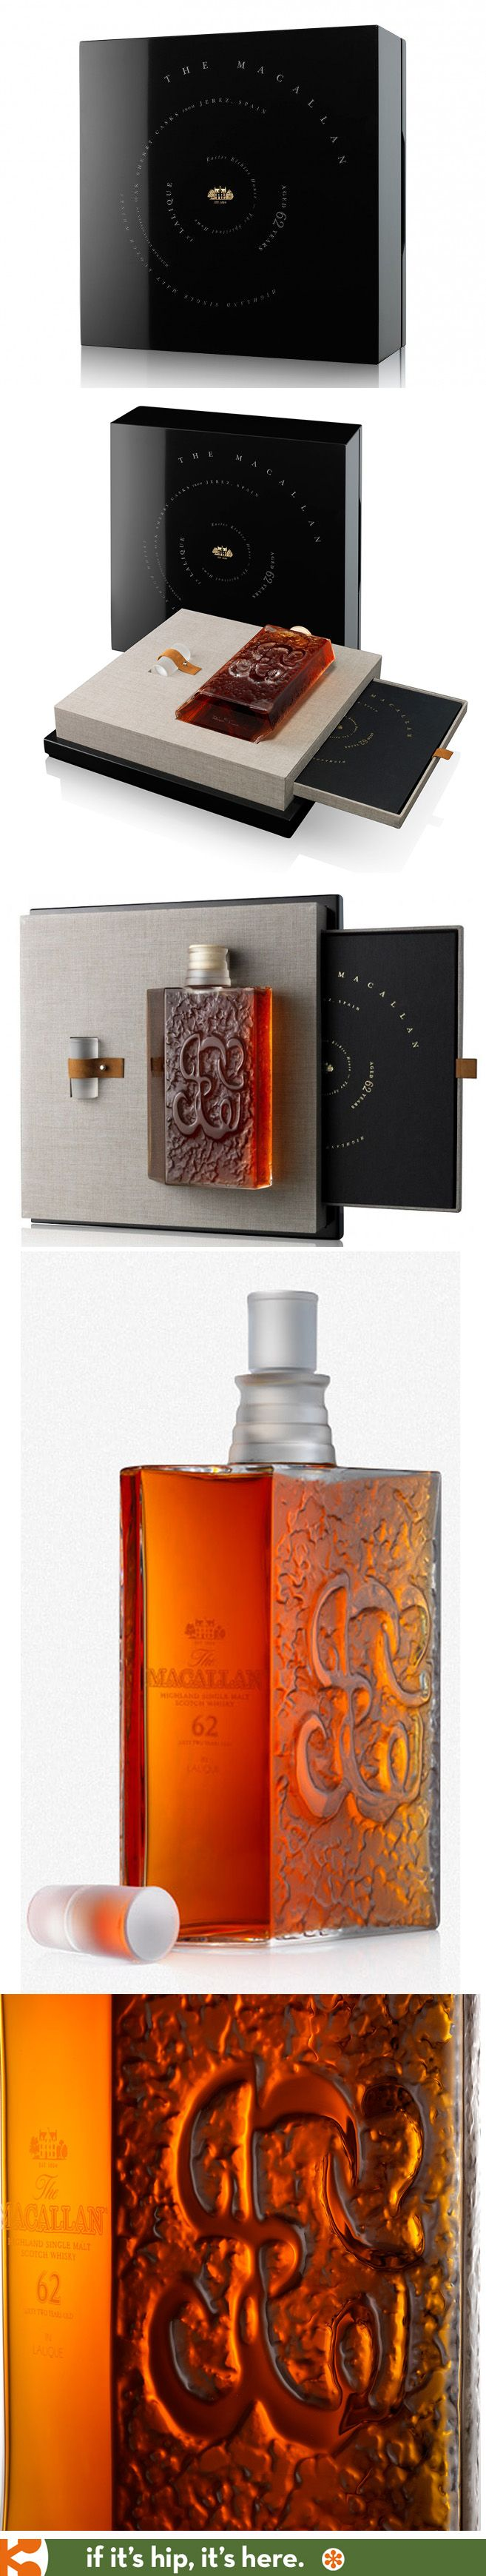 The Macallan Lalique Aged 62 Years Stunning Bottle Stopper Box And Presentation Whisky Packaging Packaging Wine Packaging